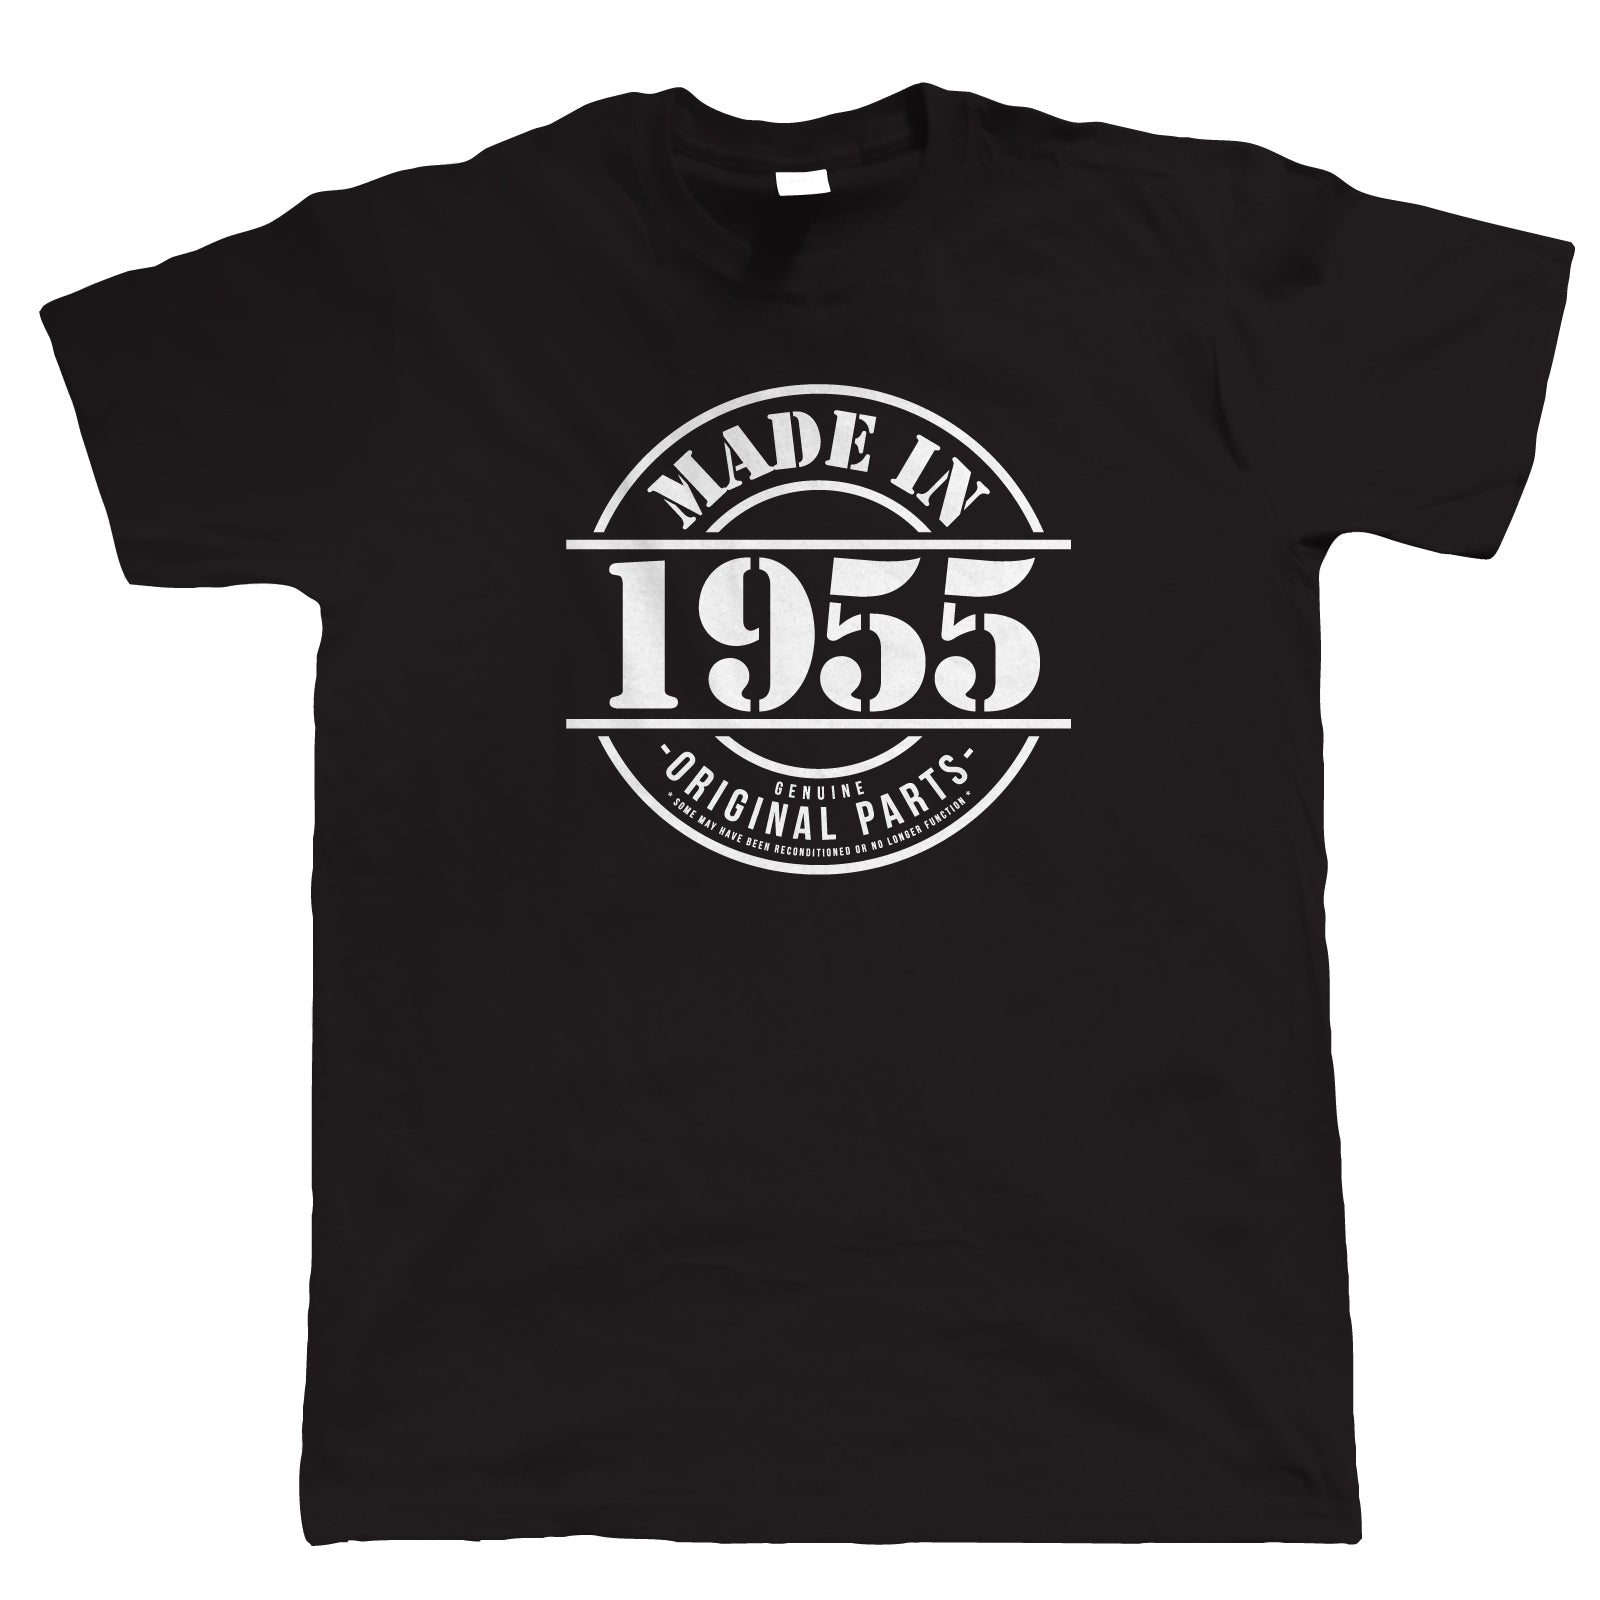 Made in 1955 Mens Funny T Shirt